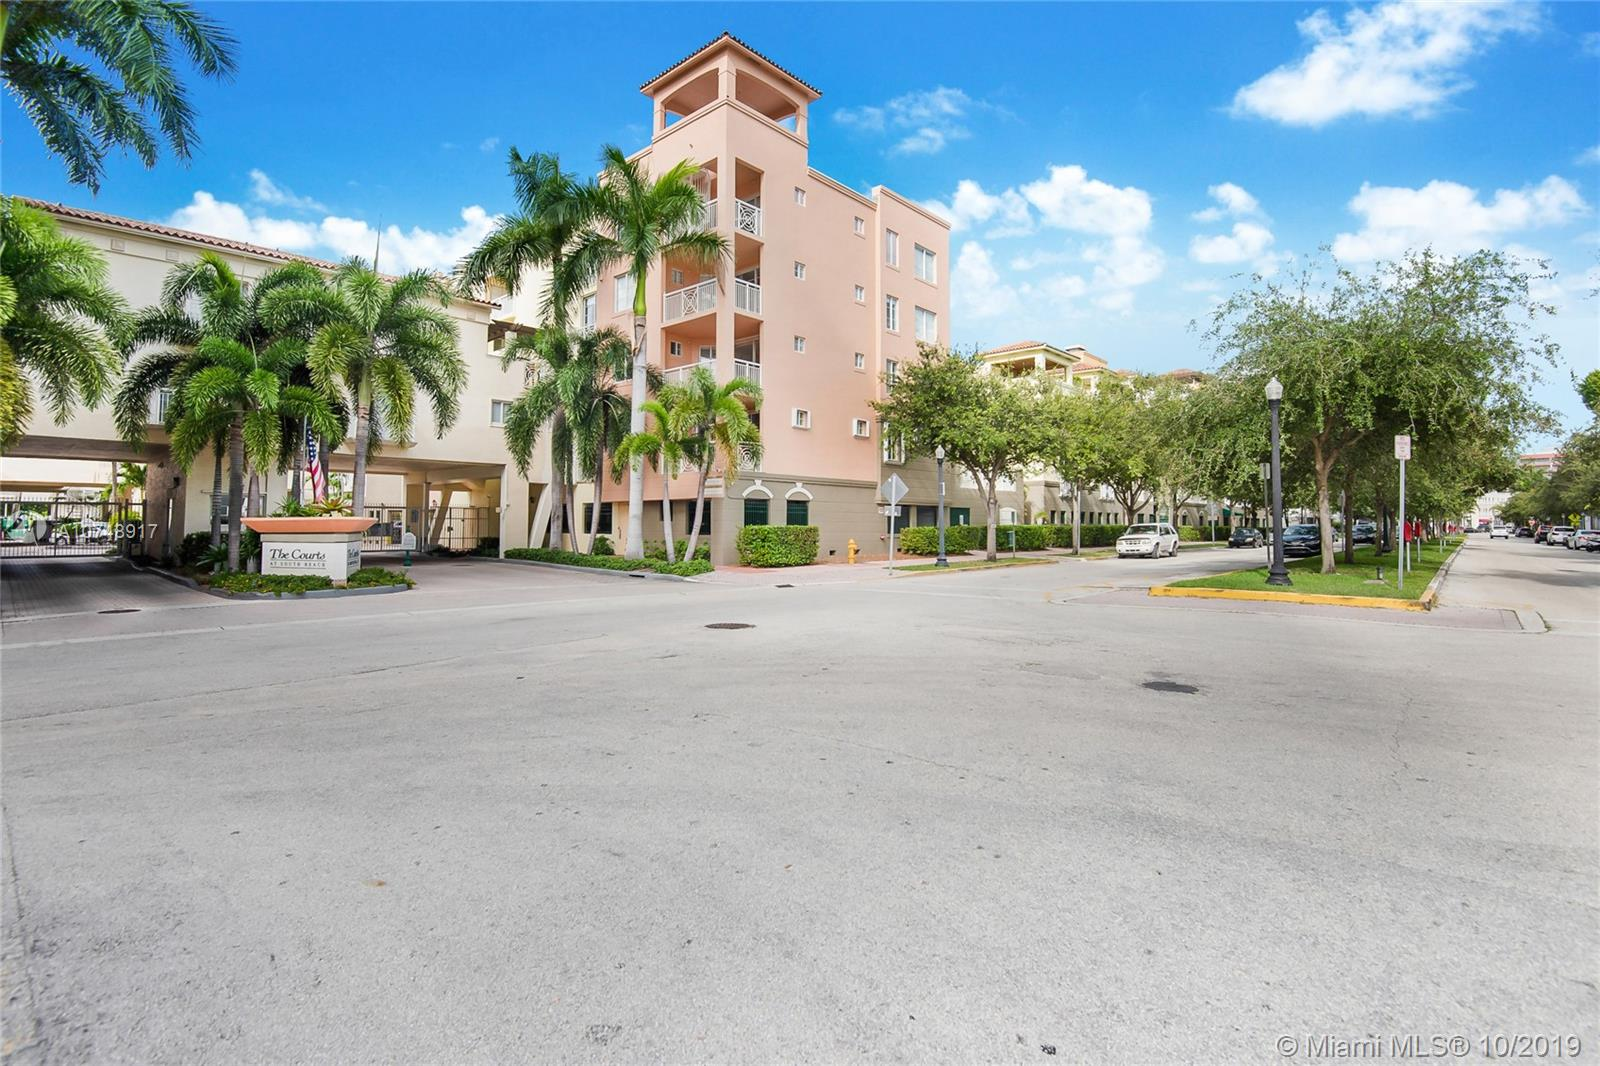 Photo of The Courts At South Beach Appartamento 121